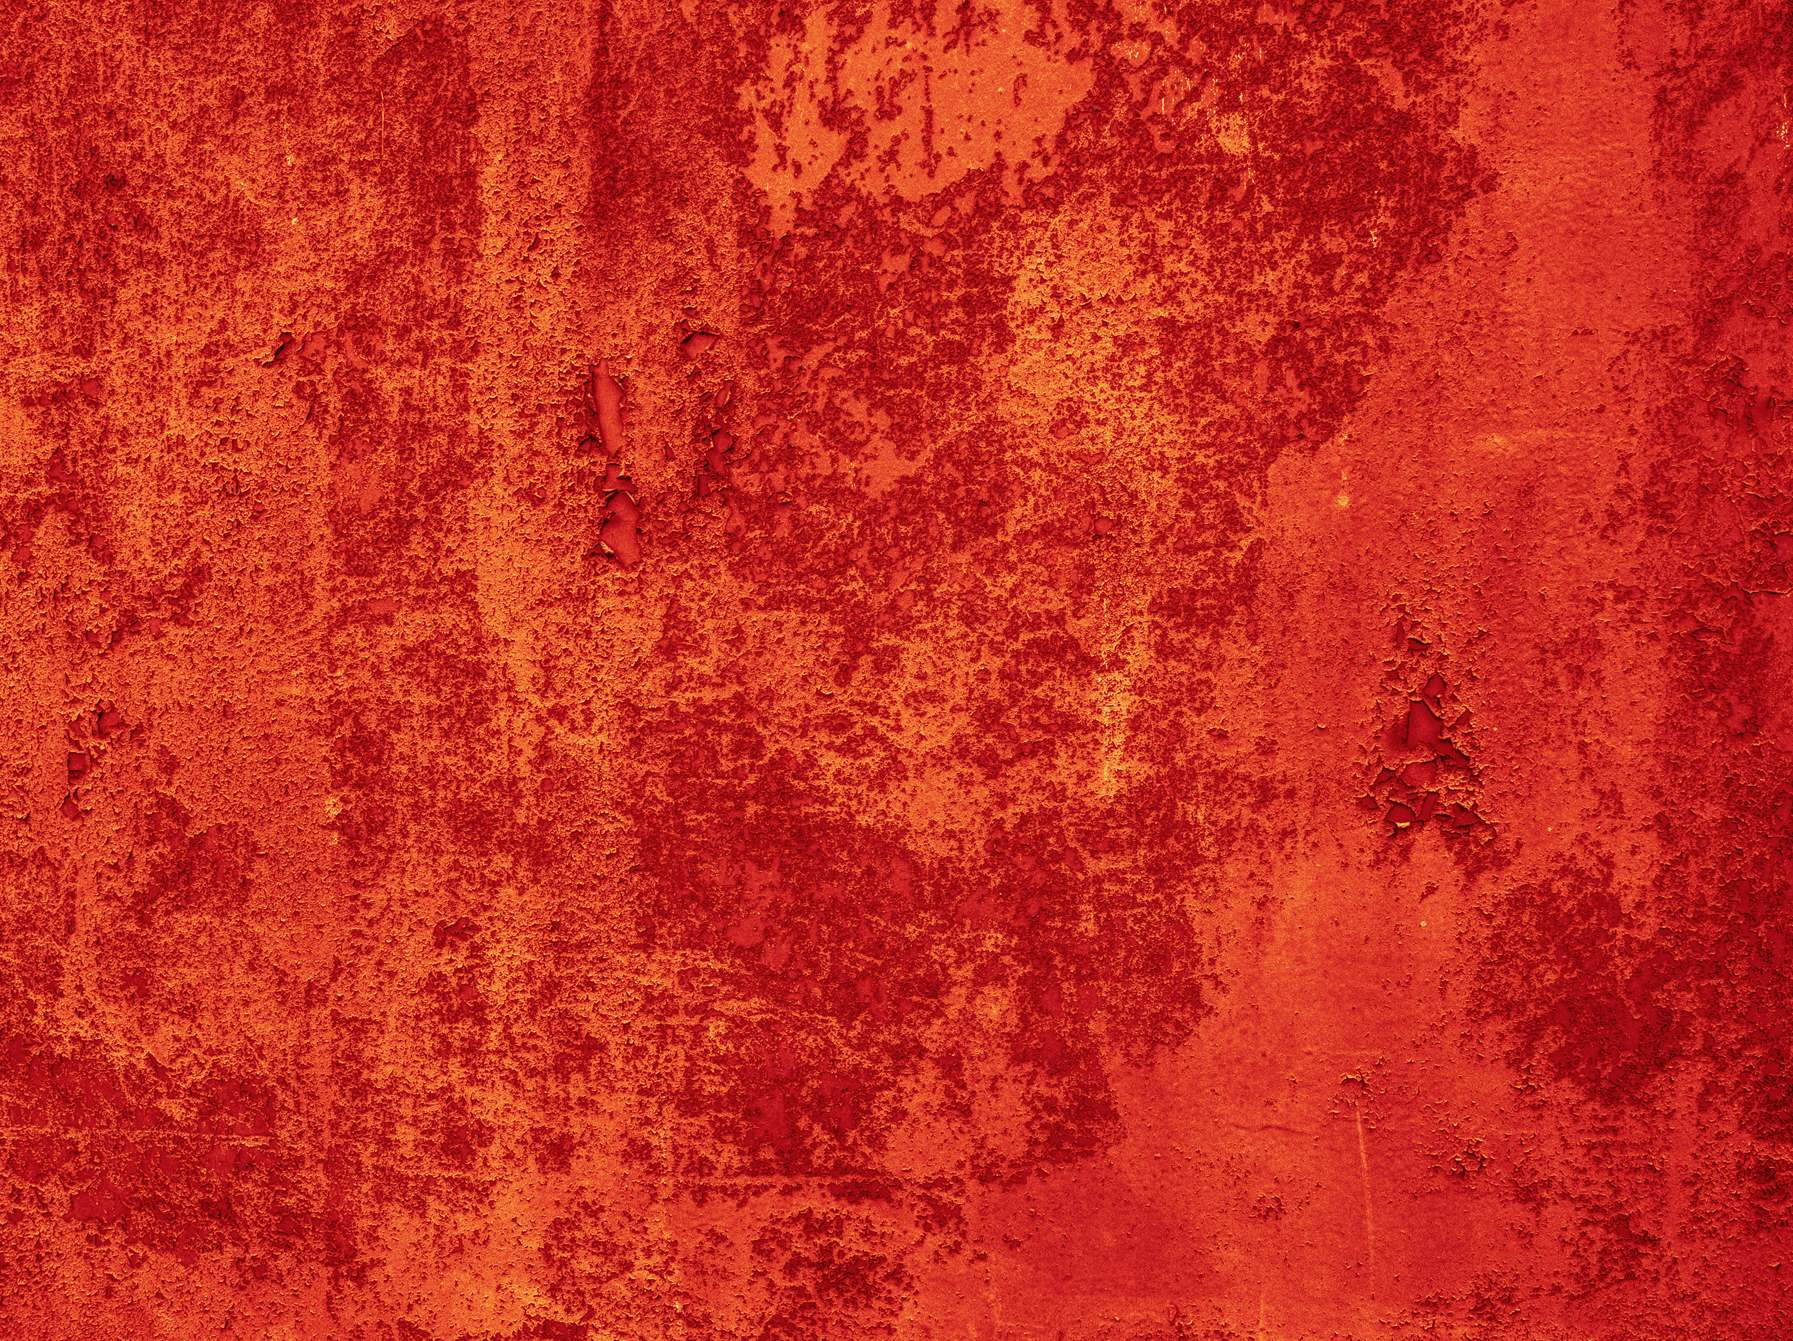 red rugged rusty metal texture photohdx